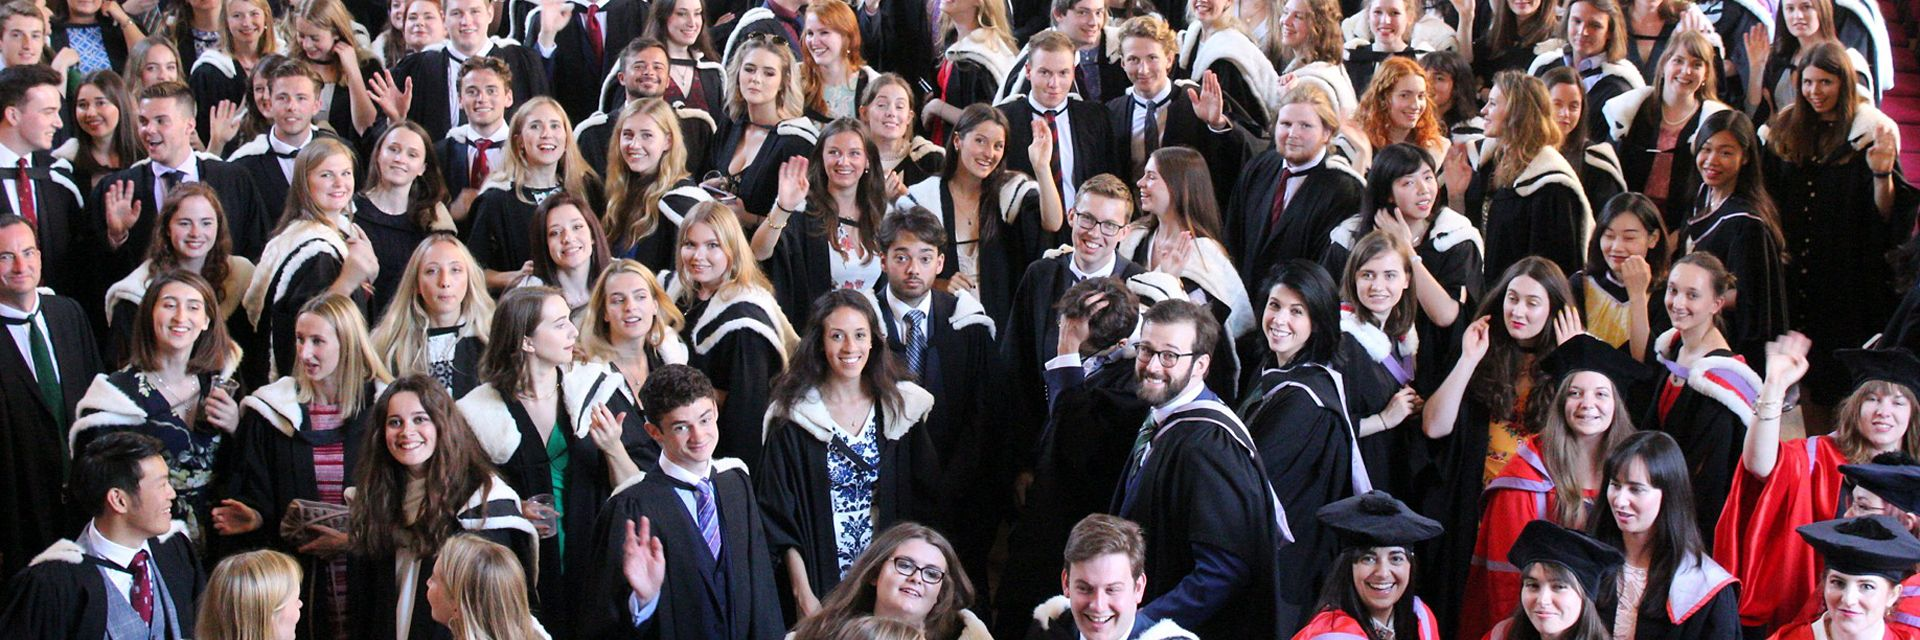 A large group of graduands in robes and hoods congregating in the Castle Great Hall